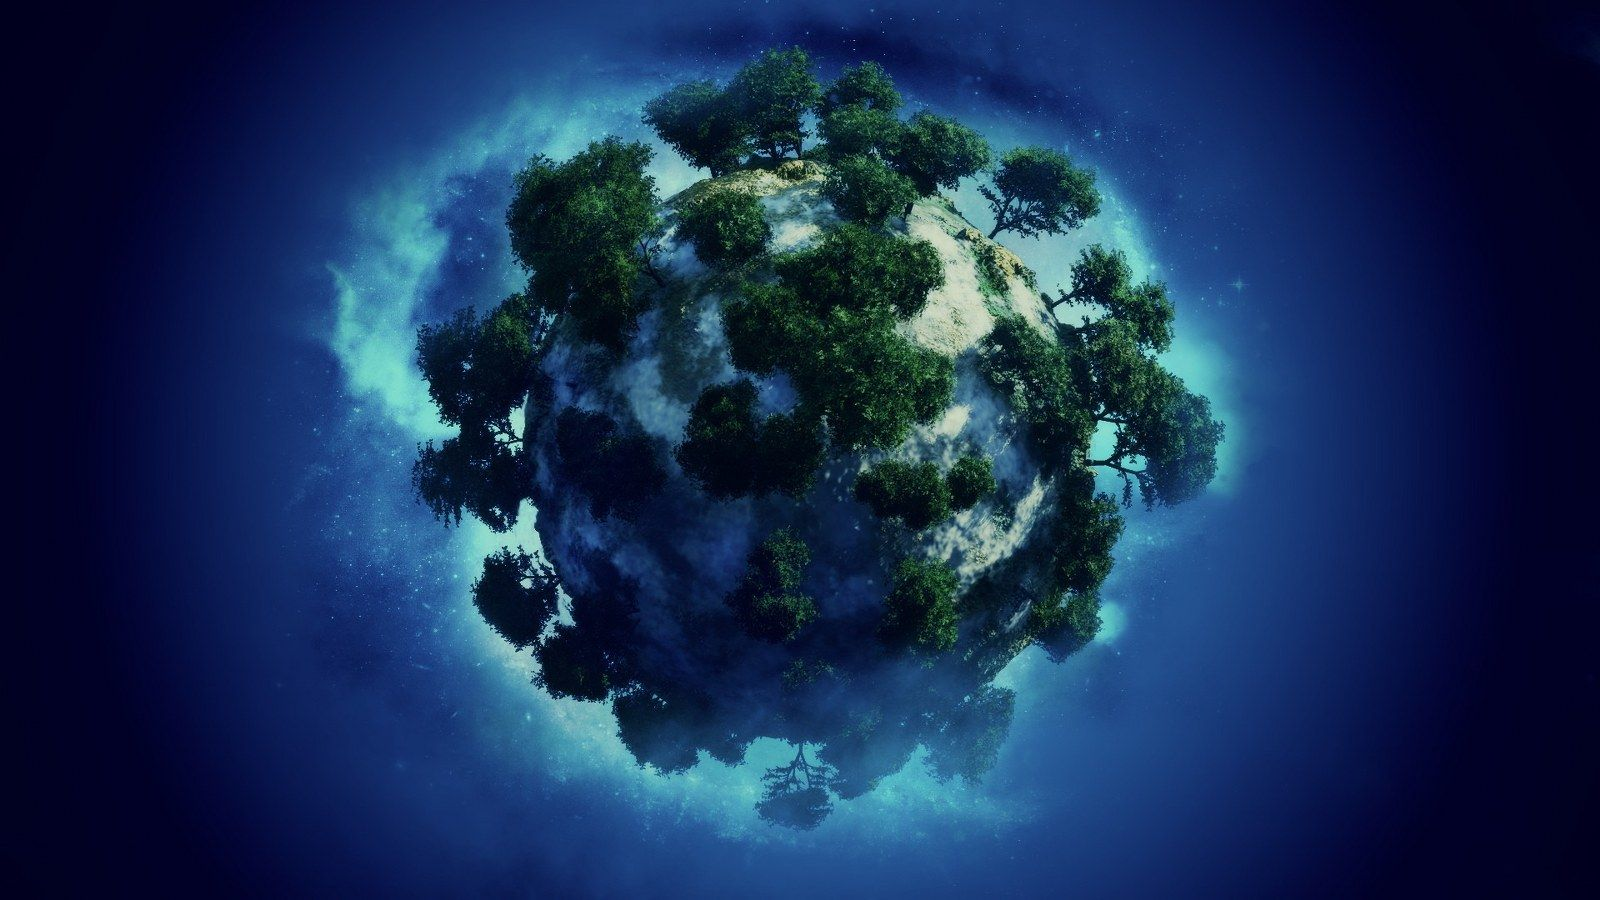 Earth Wallpaper Full Hd: Earth Day Wallpapers, Pictures, Images